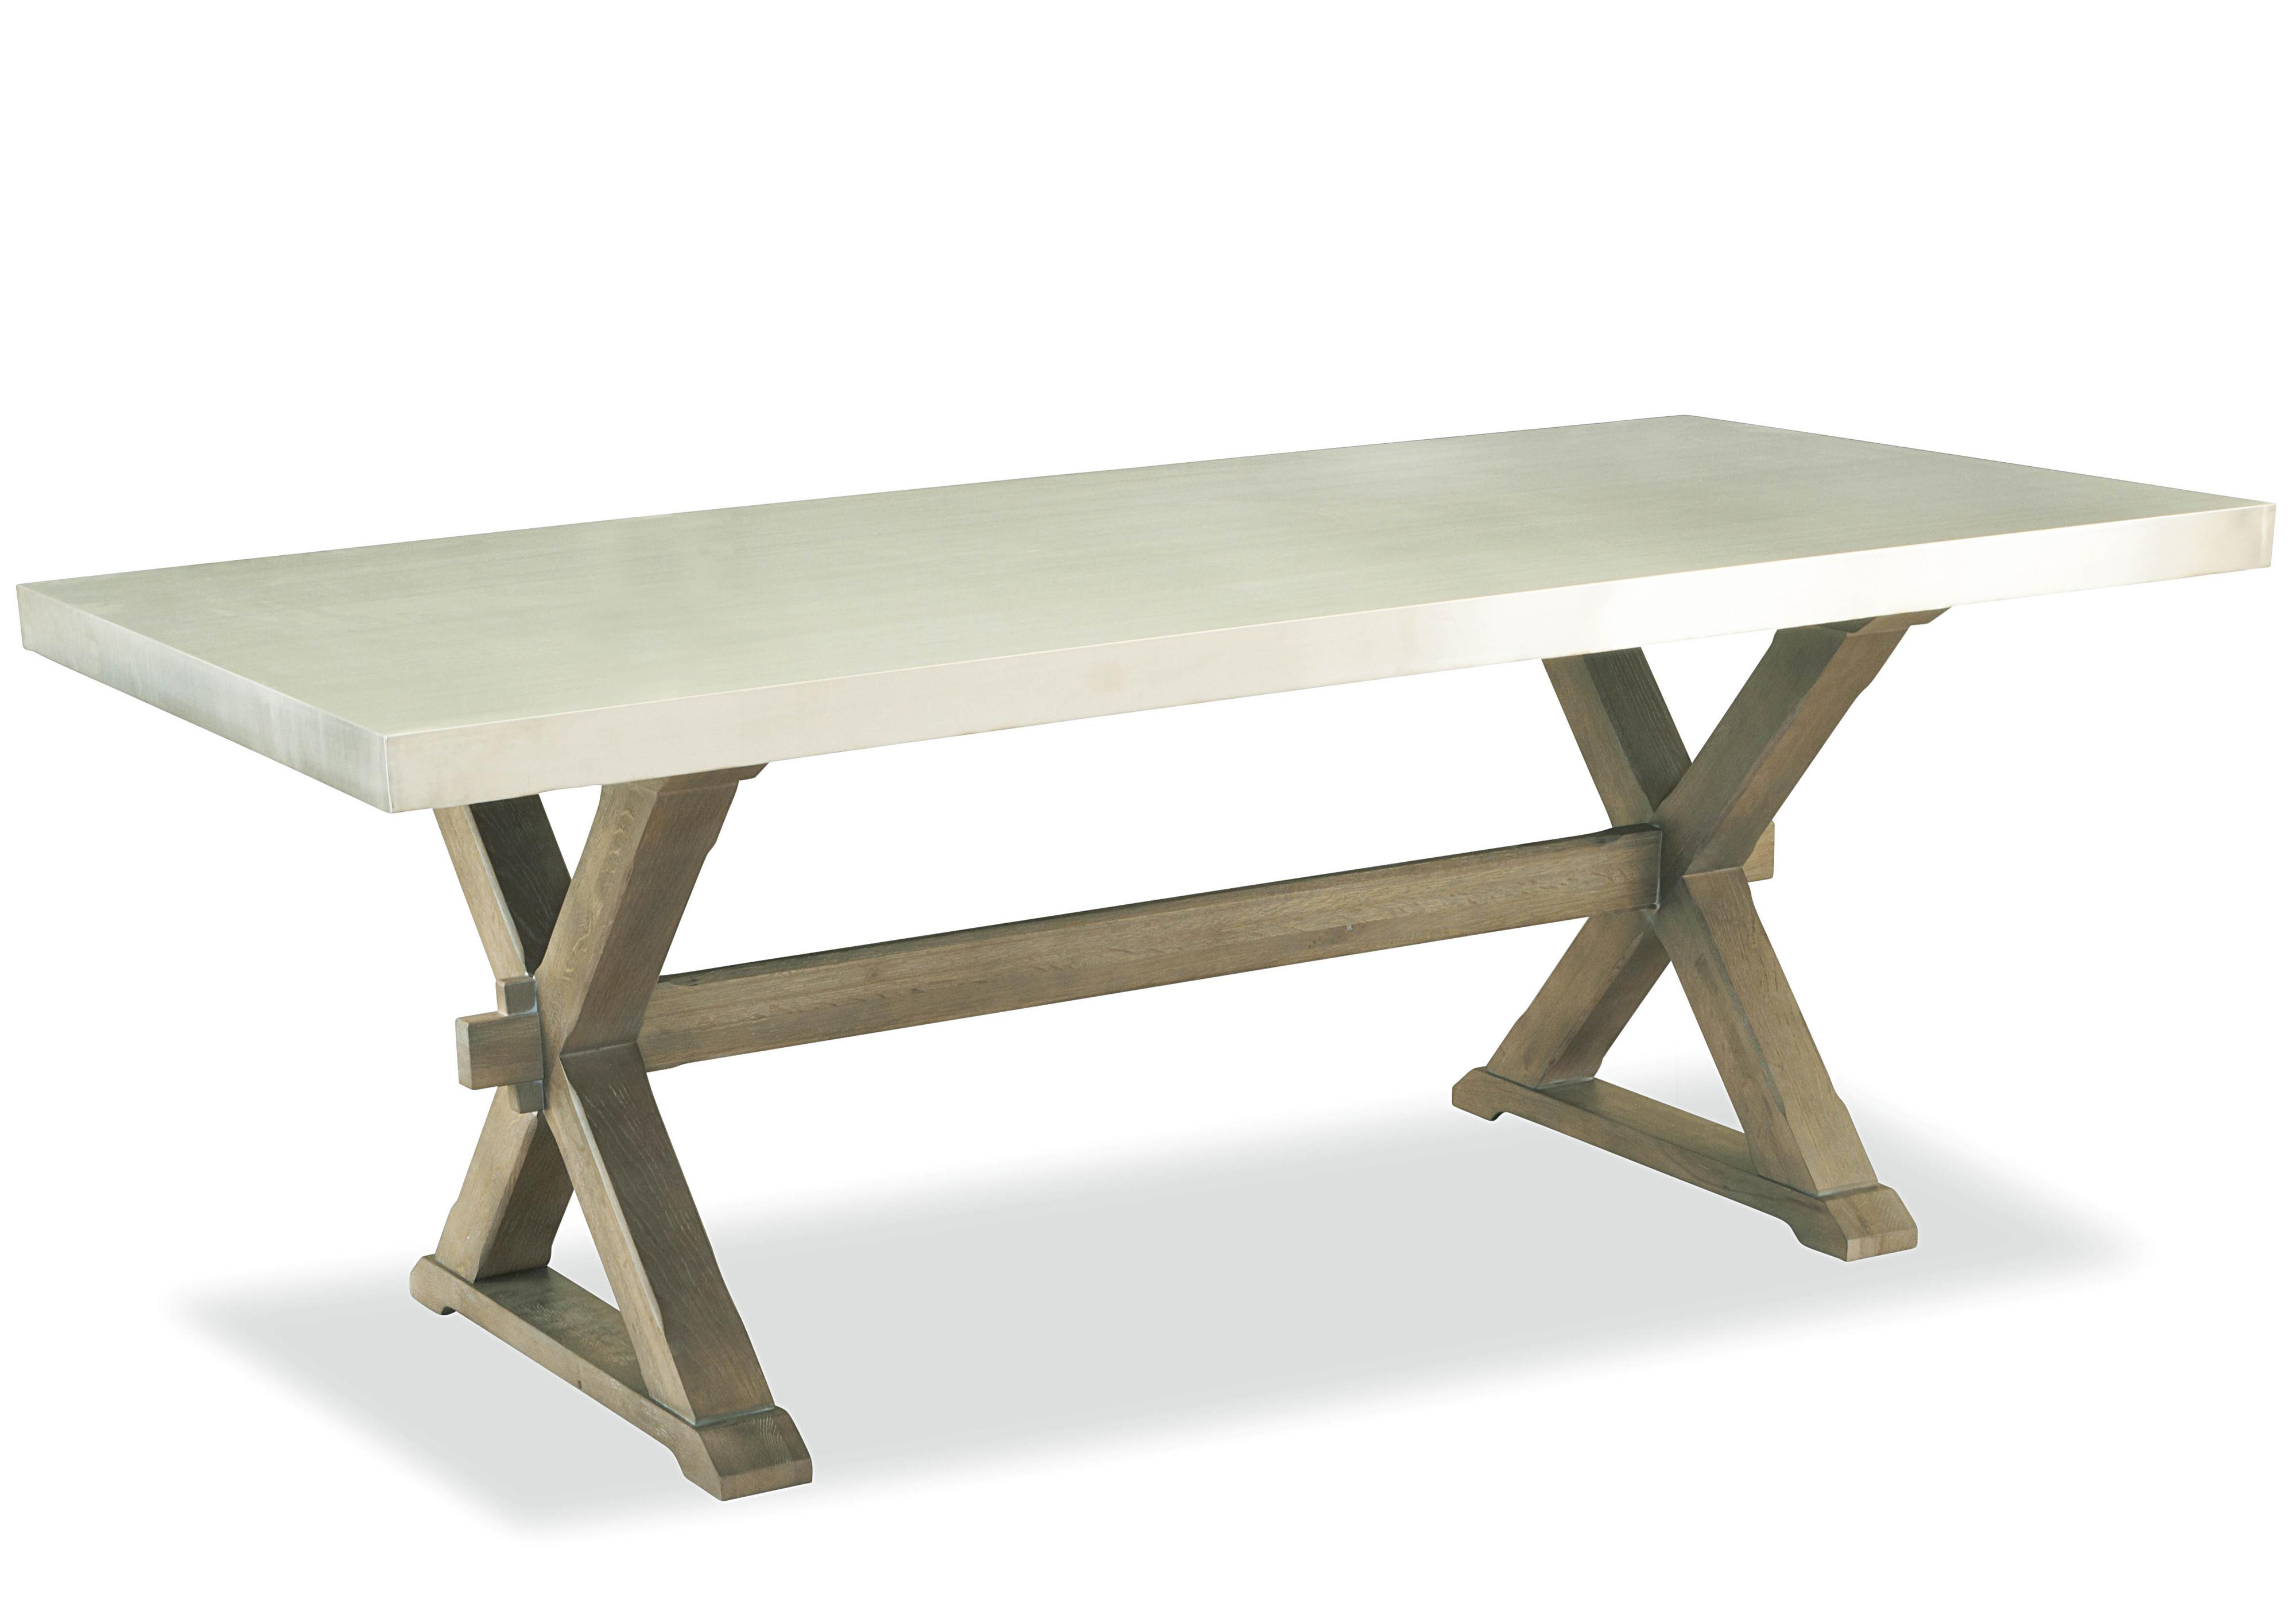 Universal Curated Flatiron Table with Trestle Base Reeds  : products2Funiversal2Fcolor2Fgreat20rooms316755 b0 from www.reedsfurniture.com size 4000 x 2792 jpeg 360kB